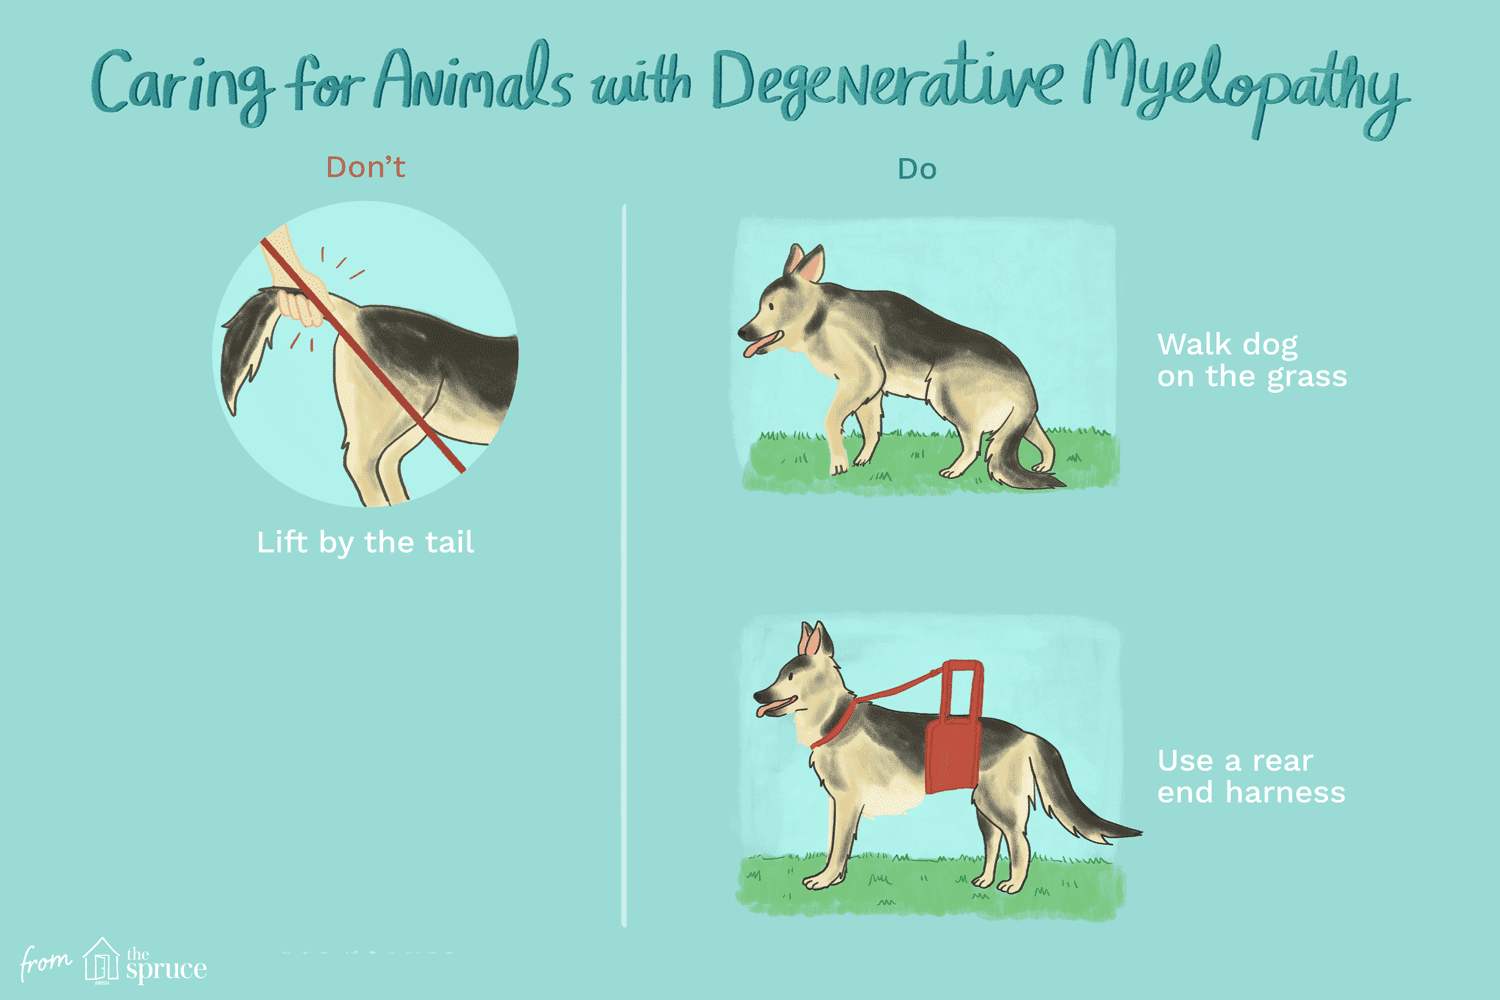 How to Treat Degenerative Myelopathy in Dogs